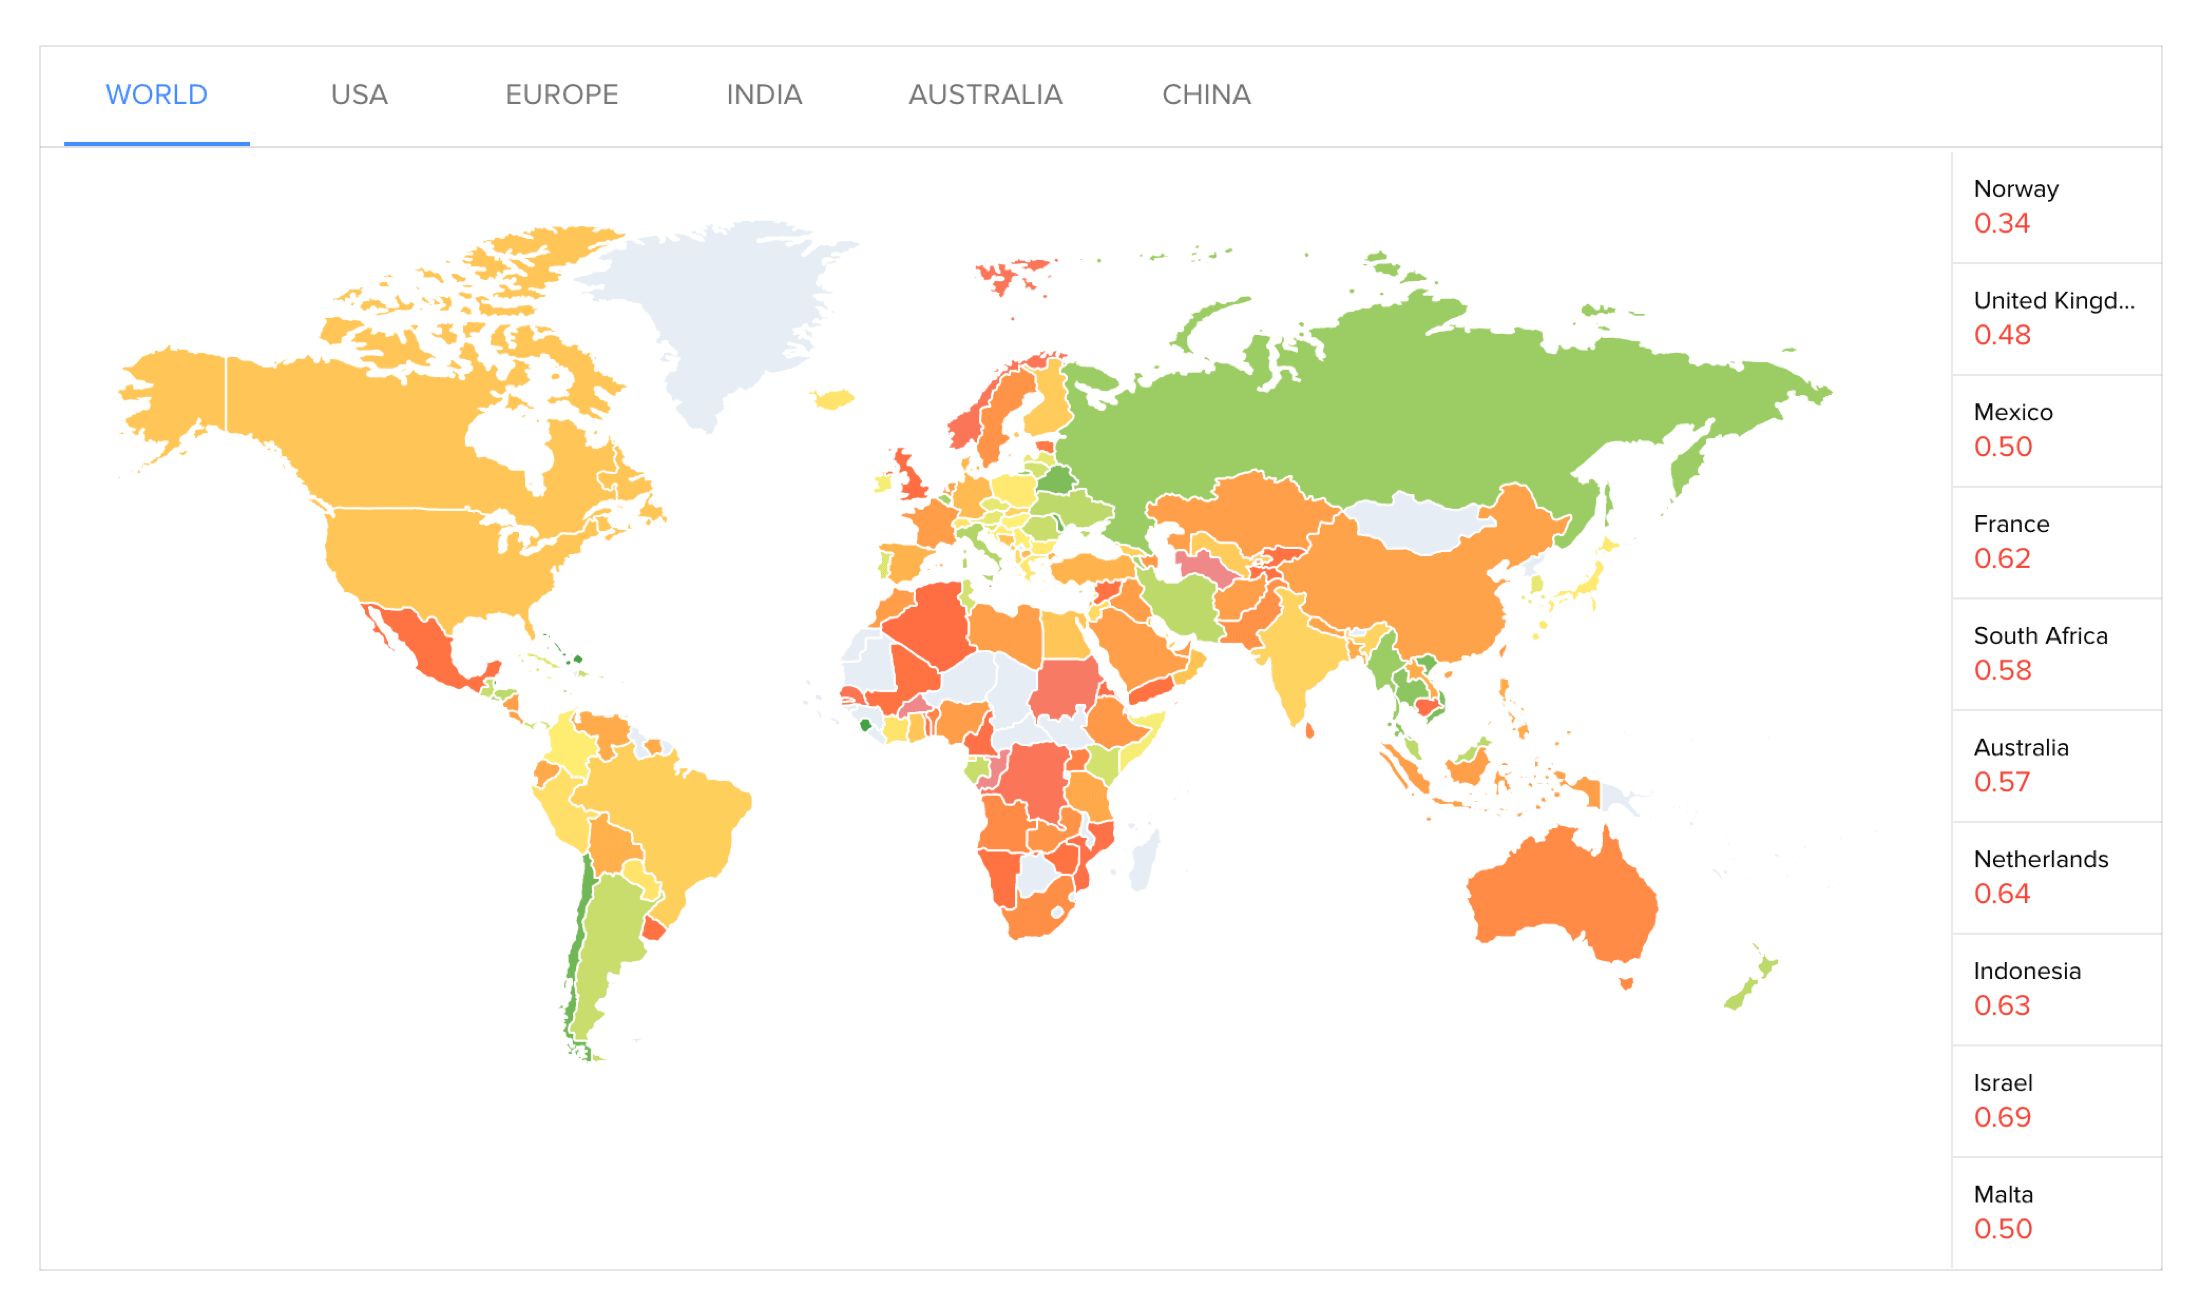 End-user experience scores plotted on a global map